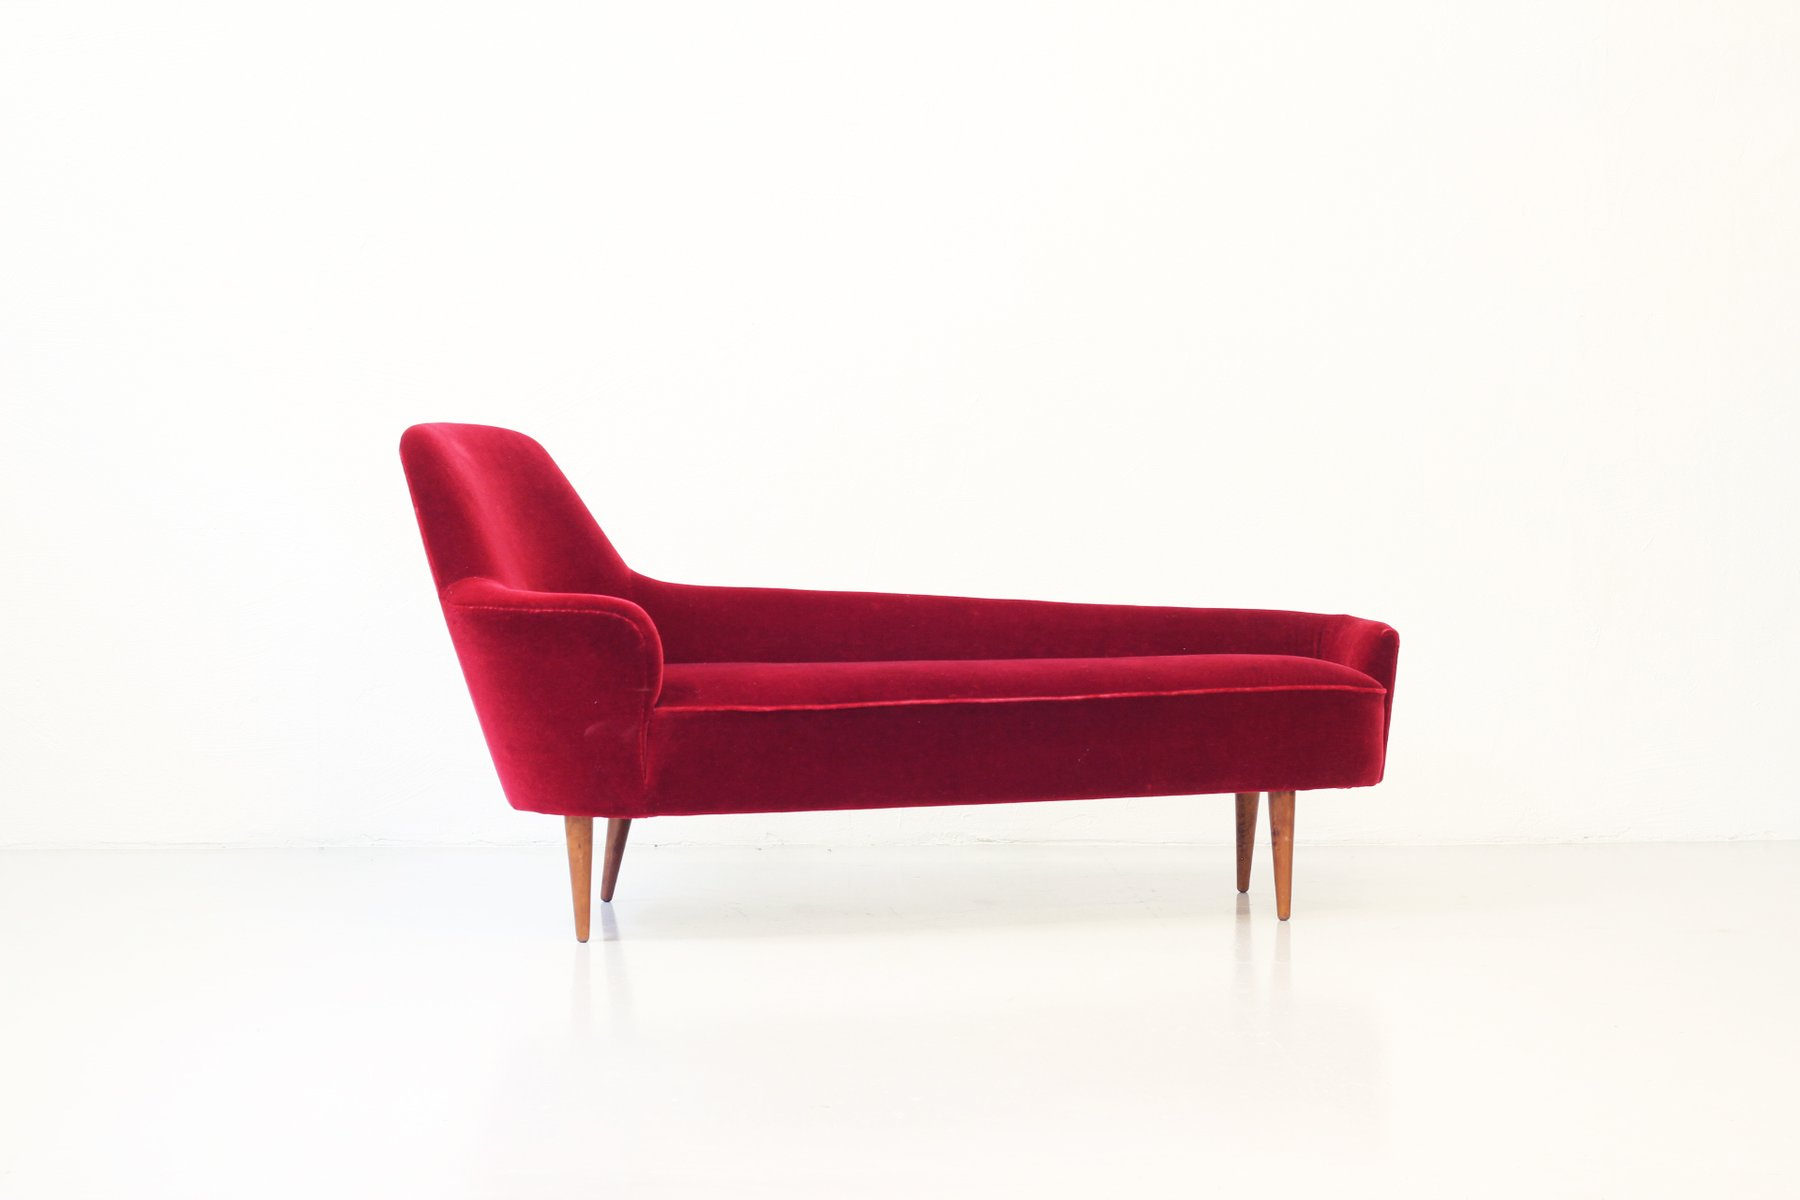 Singoalla chaise lounge by gillis lundgren for ikea 1961 for Chaise longue lounge